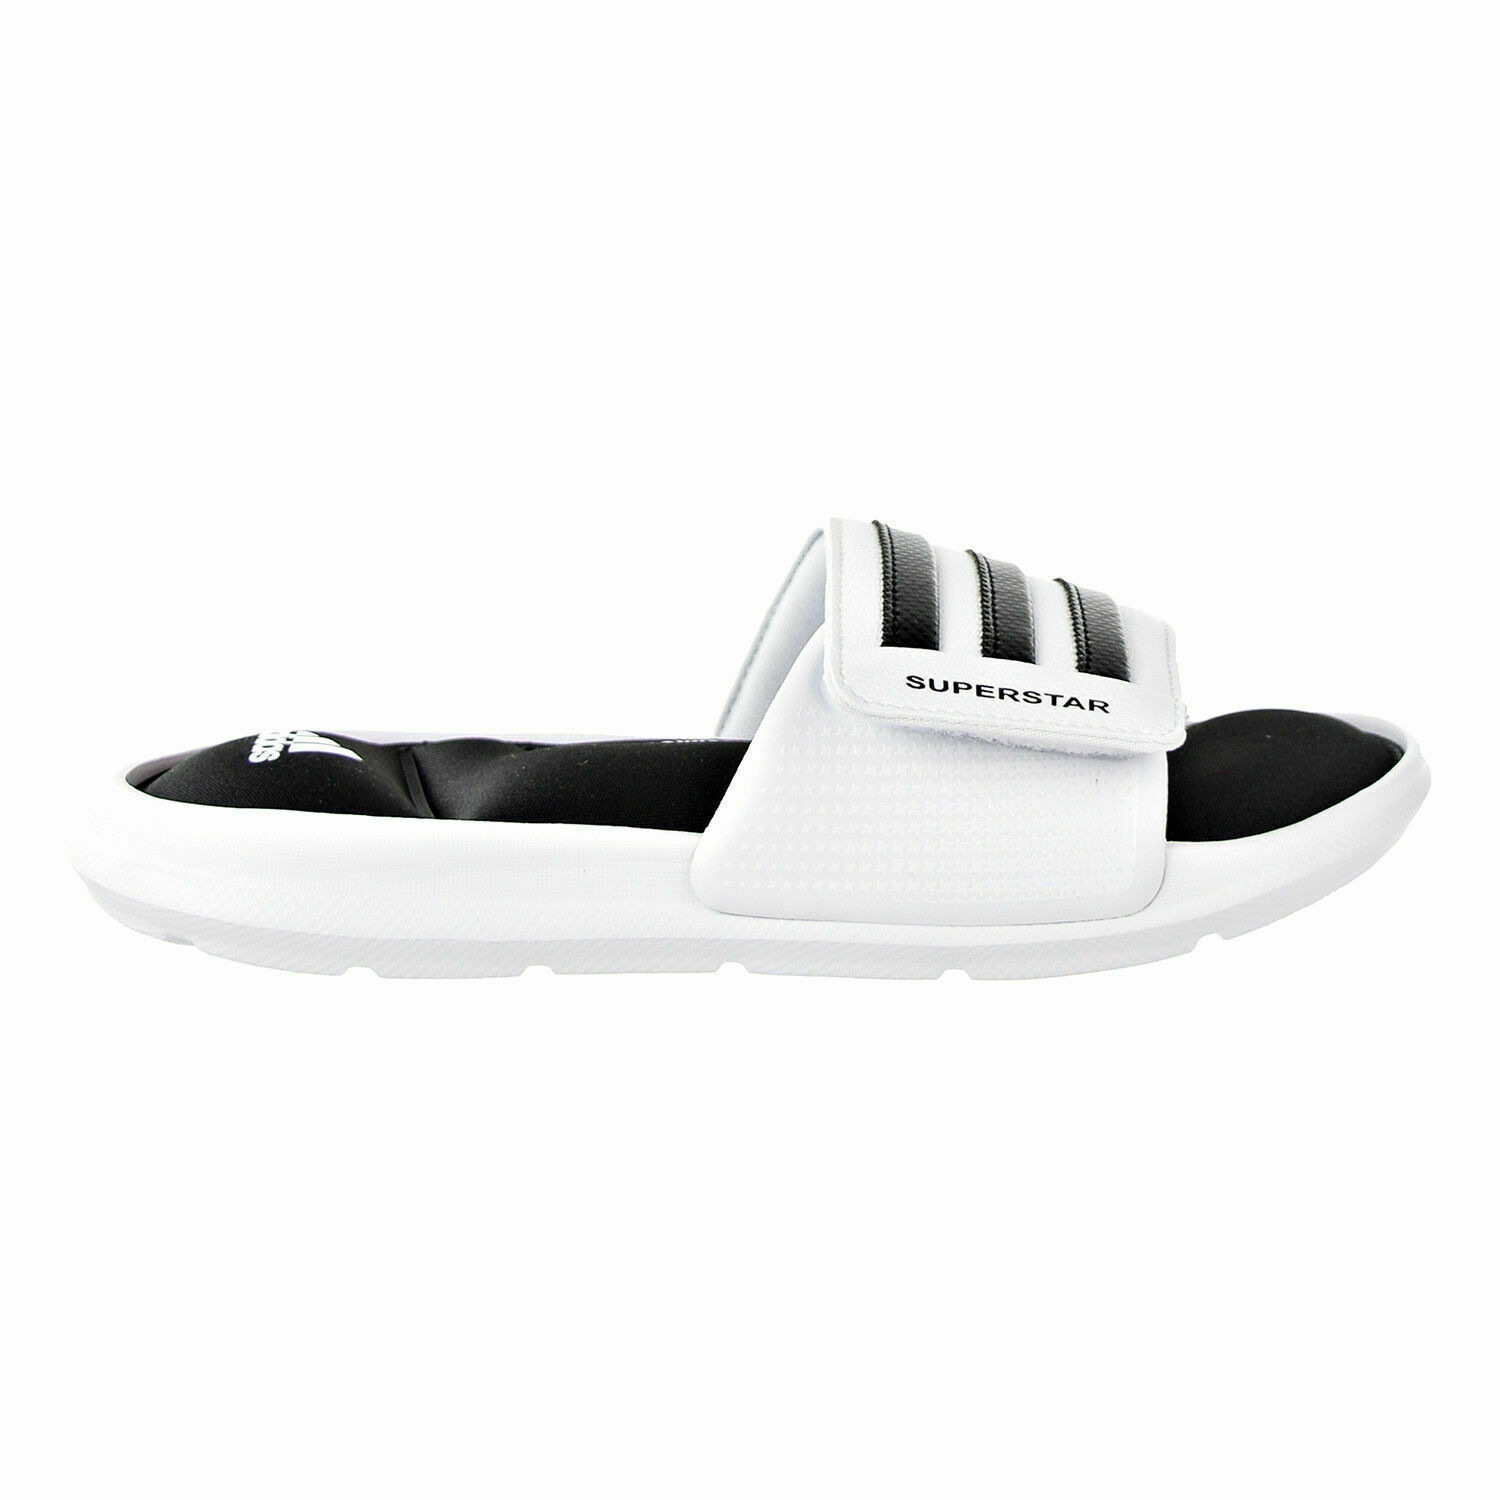 ADIDAS SUPERSTAR SURROUND MEMORY FOAM SLIDE SANDALS MEN SHOES MILK SIZE 15 NEW image 4